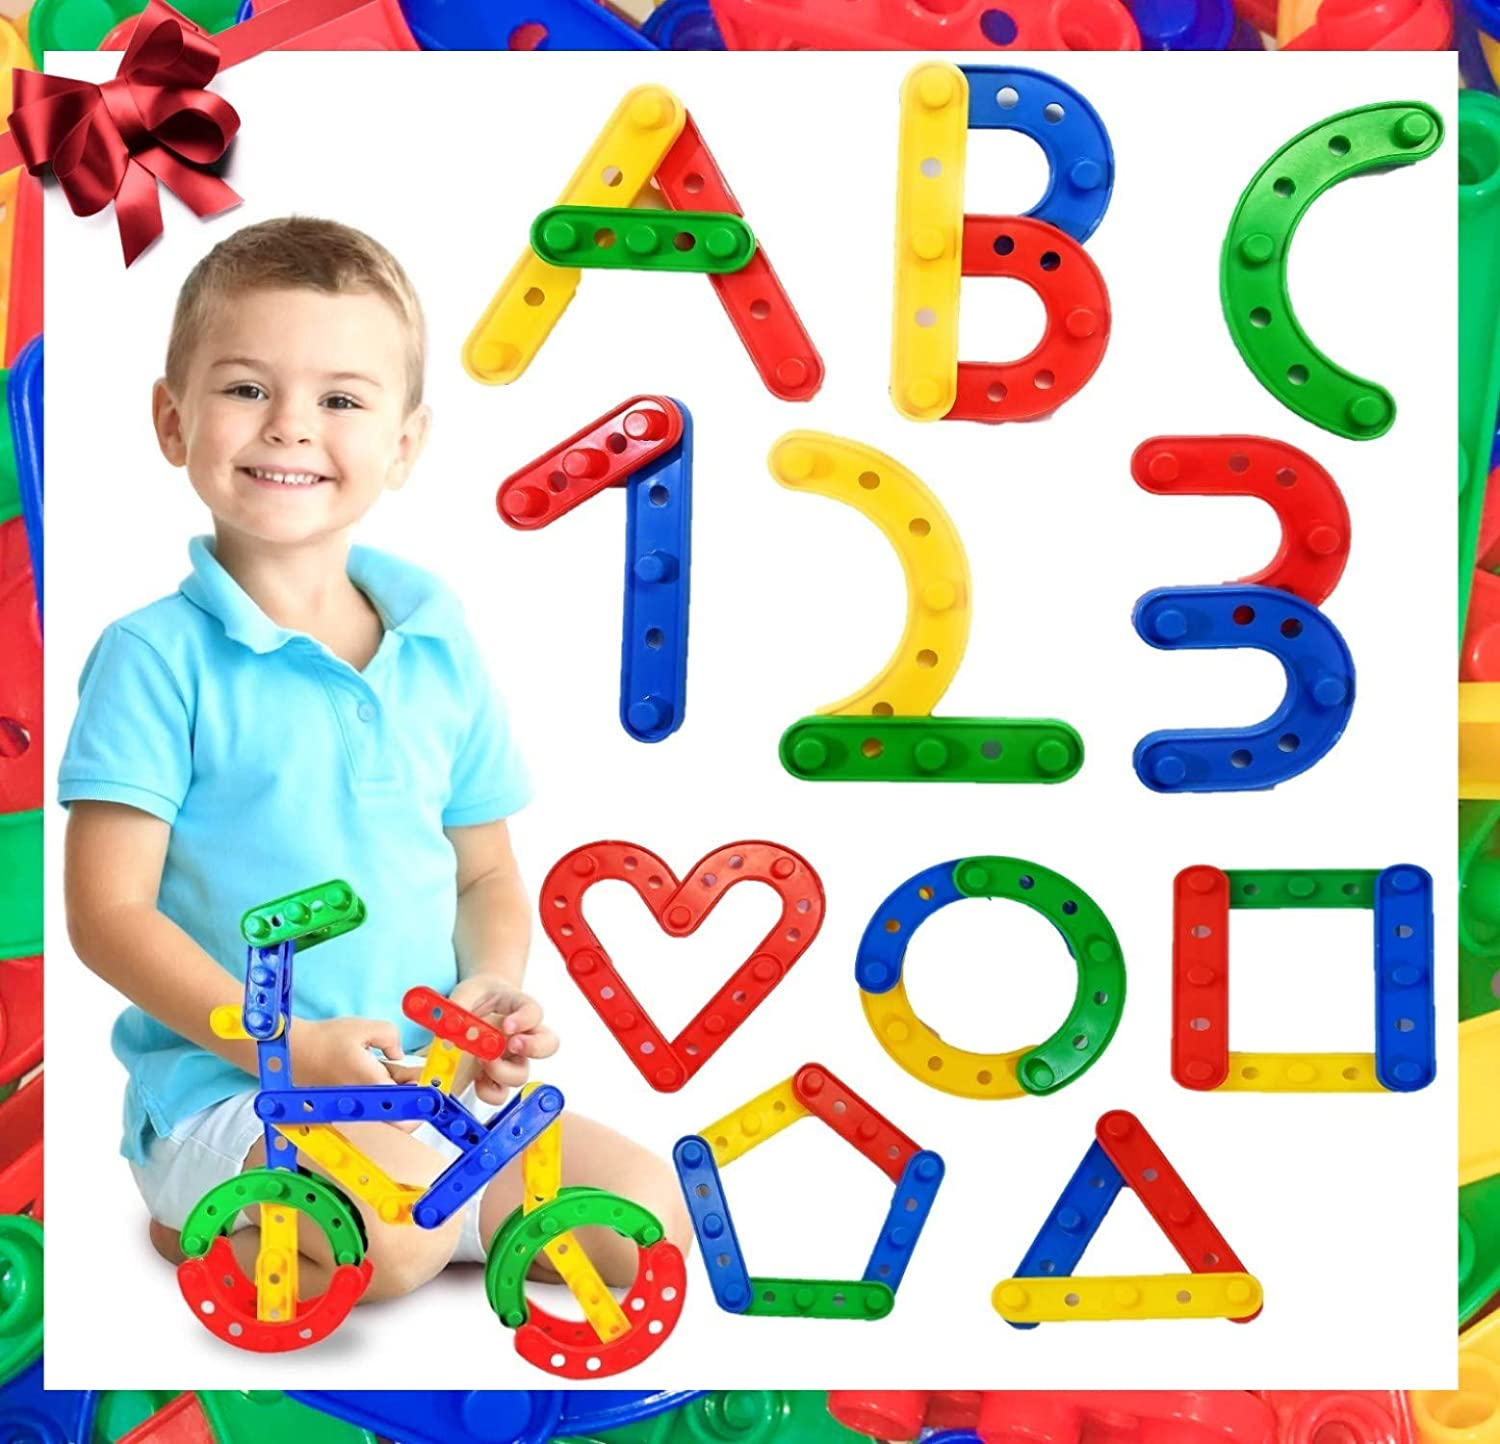 Jarrby Montessori Toys for Toddlers   STEM / Steam Therapy Toys   Kids Toys   Toddler Building Toys   Preschool Learning Toys   Sensory Toys for Autistic Children - Age 2, 3, 4,5, +